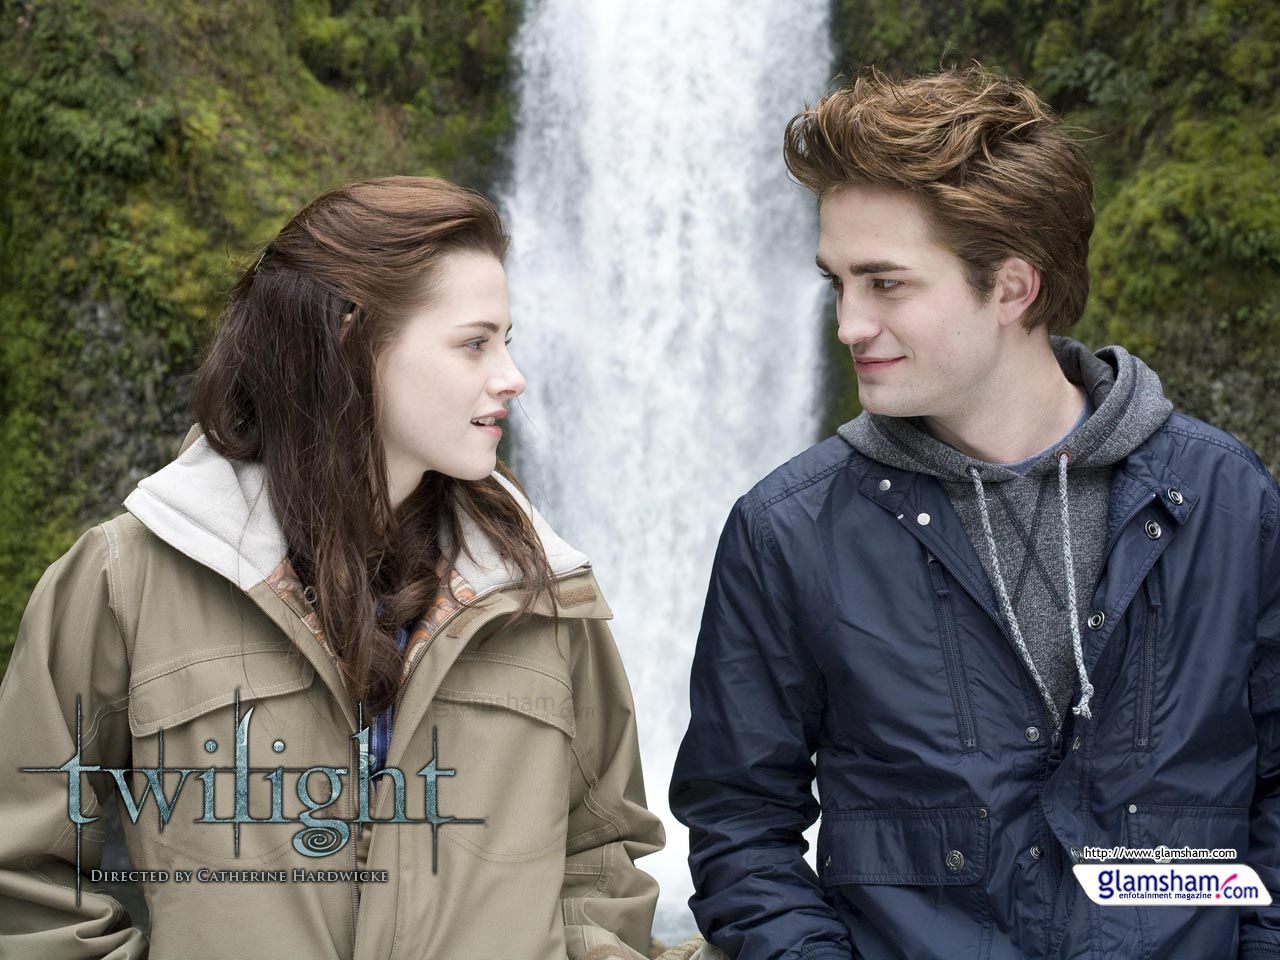 Wallpapers Of Twilight Movie Group 1280 1024 Wallpapers Twilight Movie 50 Wallpapers Adorable Wallpapers Twilight Soundtrack Twilight Saga Twilight Movie